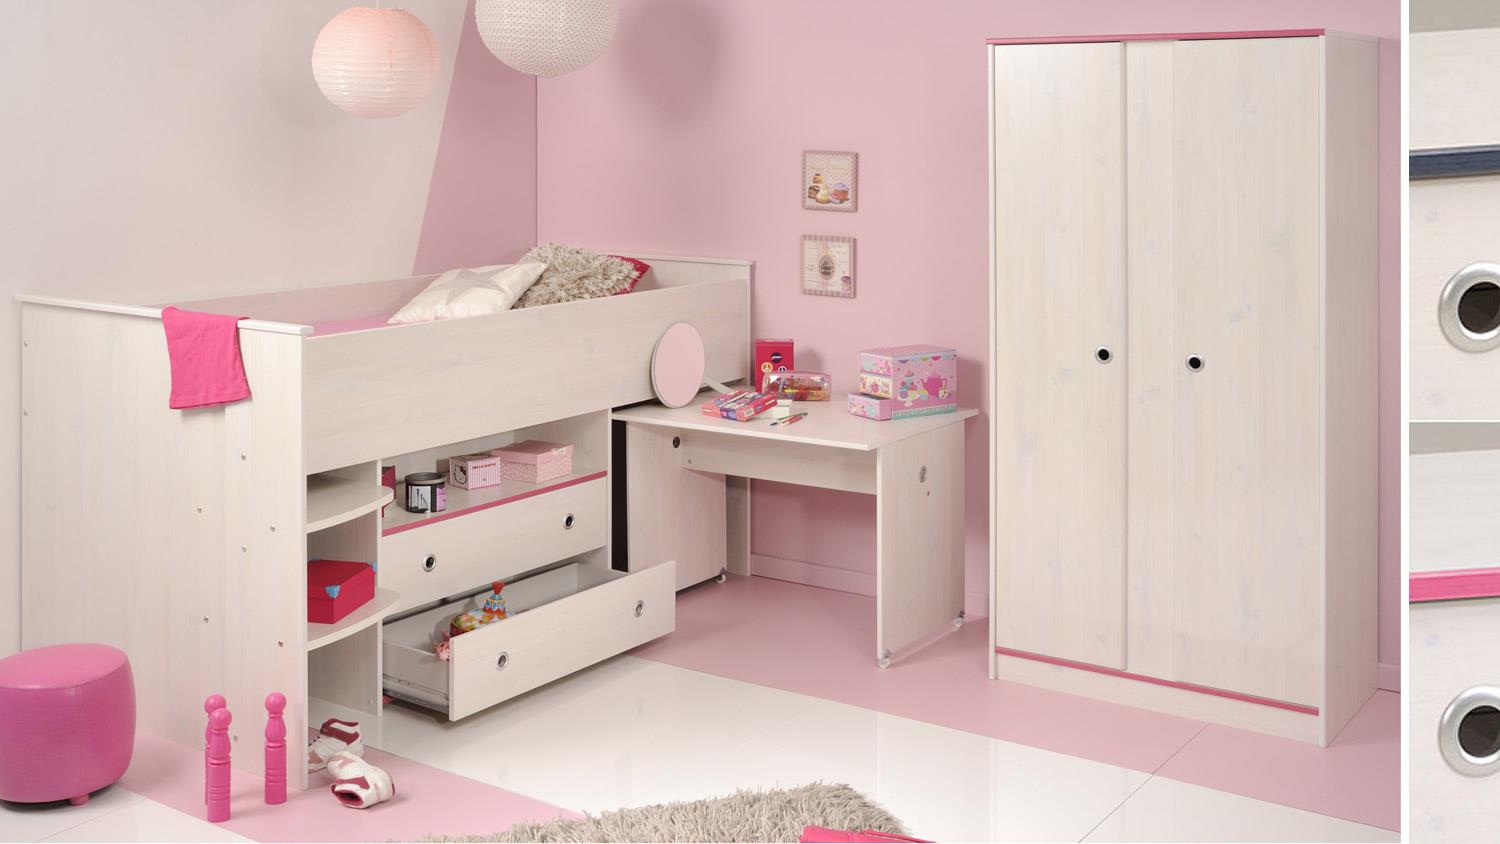 kinderzimmer set smoozy 25 hochbett in kiefer wei kanten blau pink. Black Bedroom Furniture Sets. Home Design Ideas